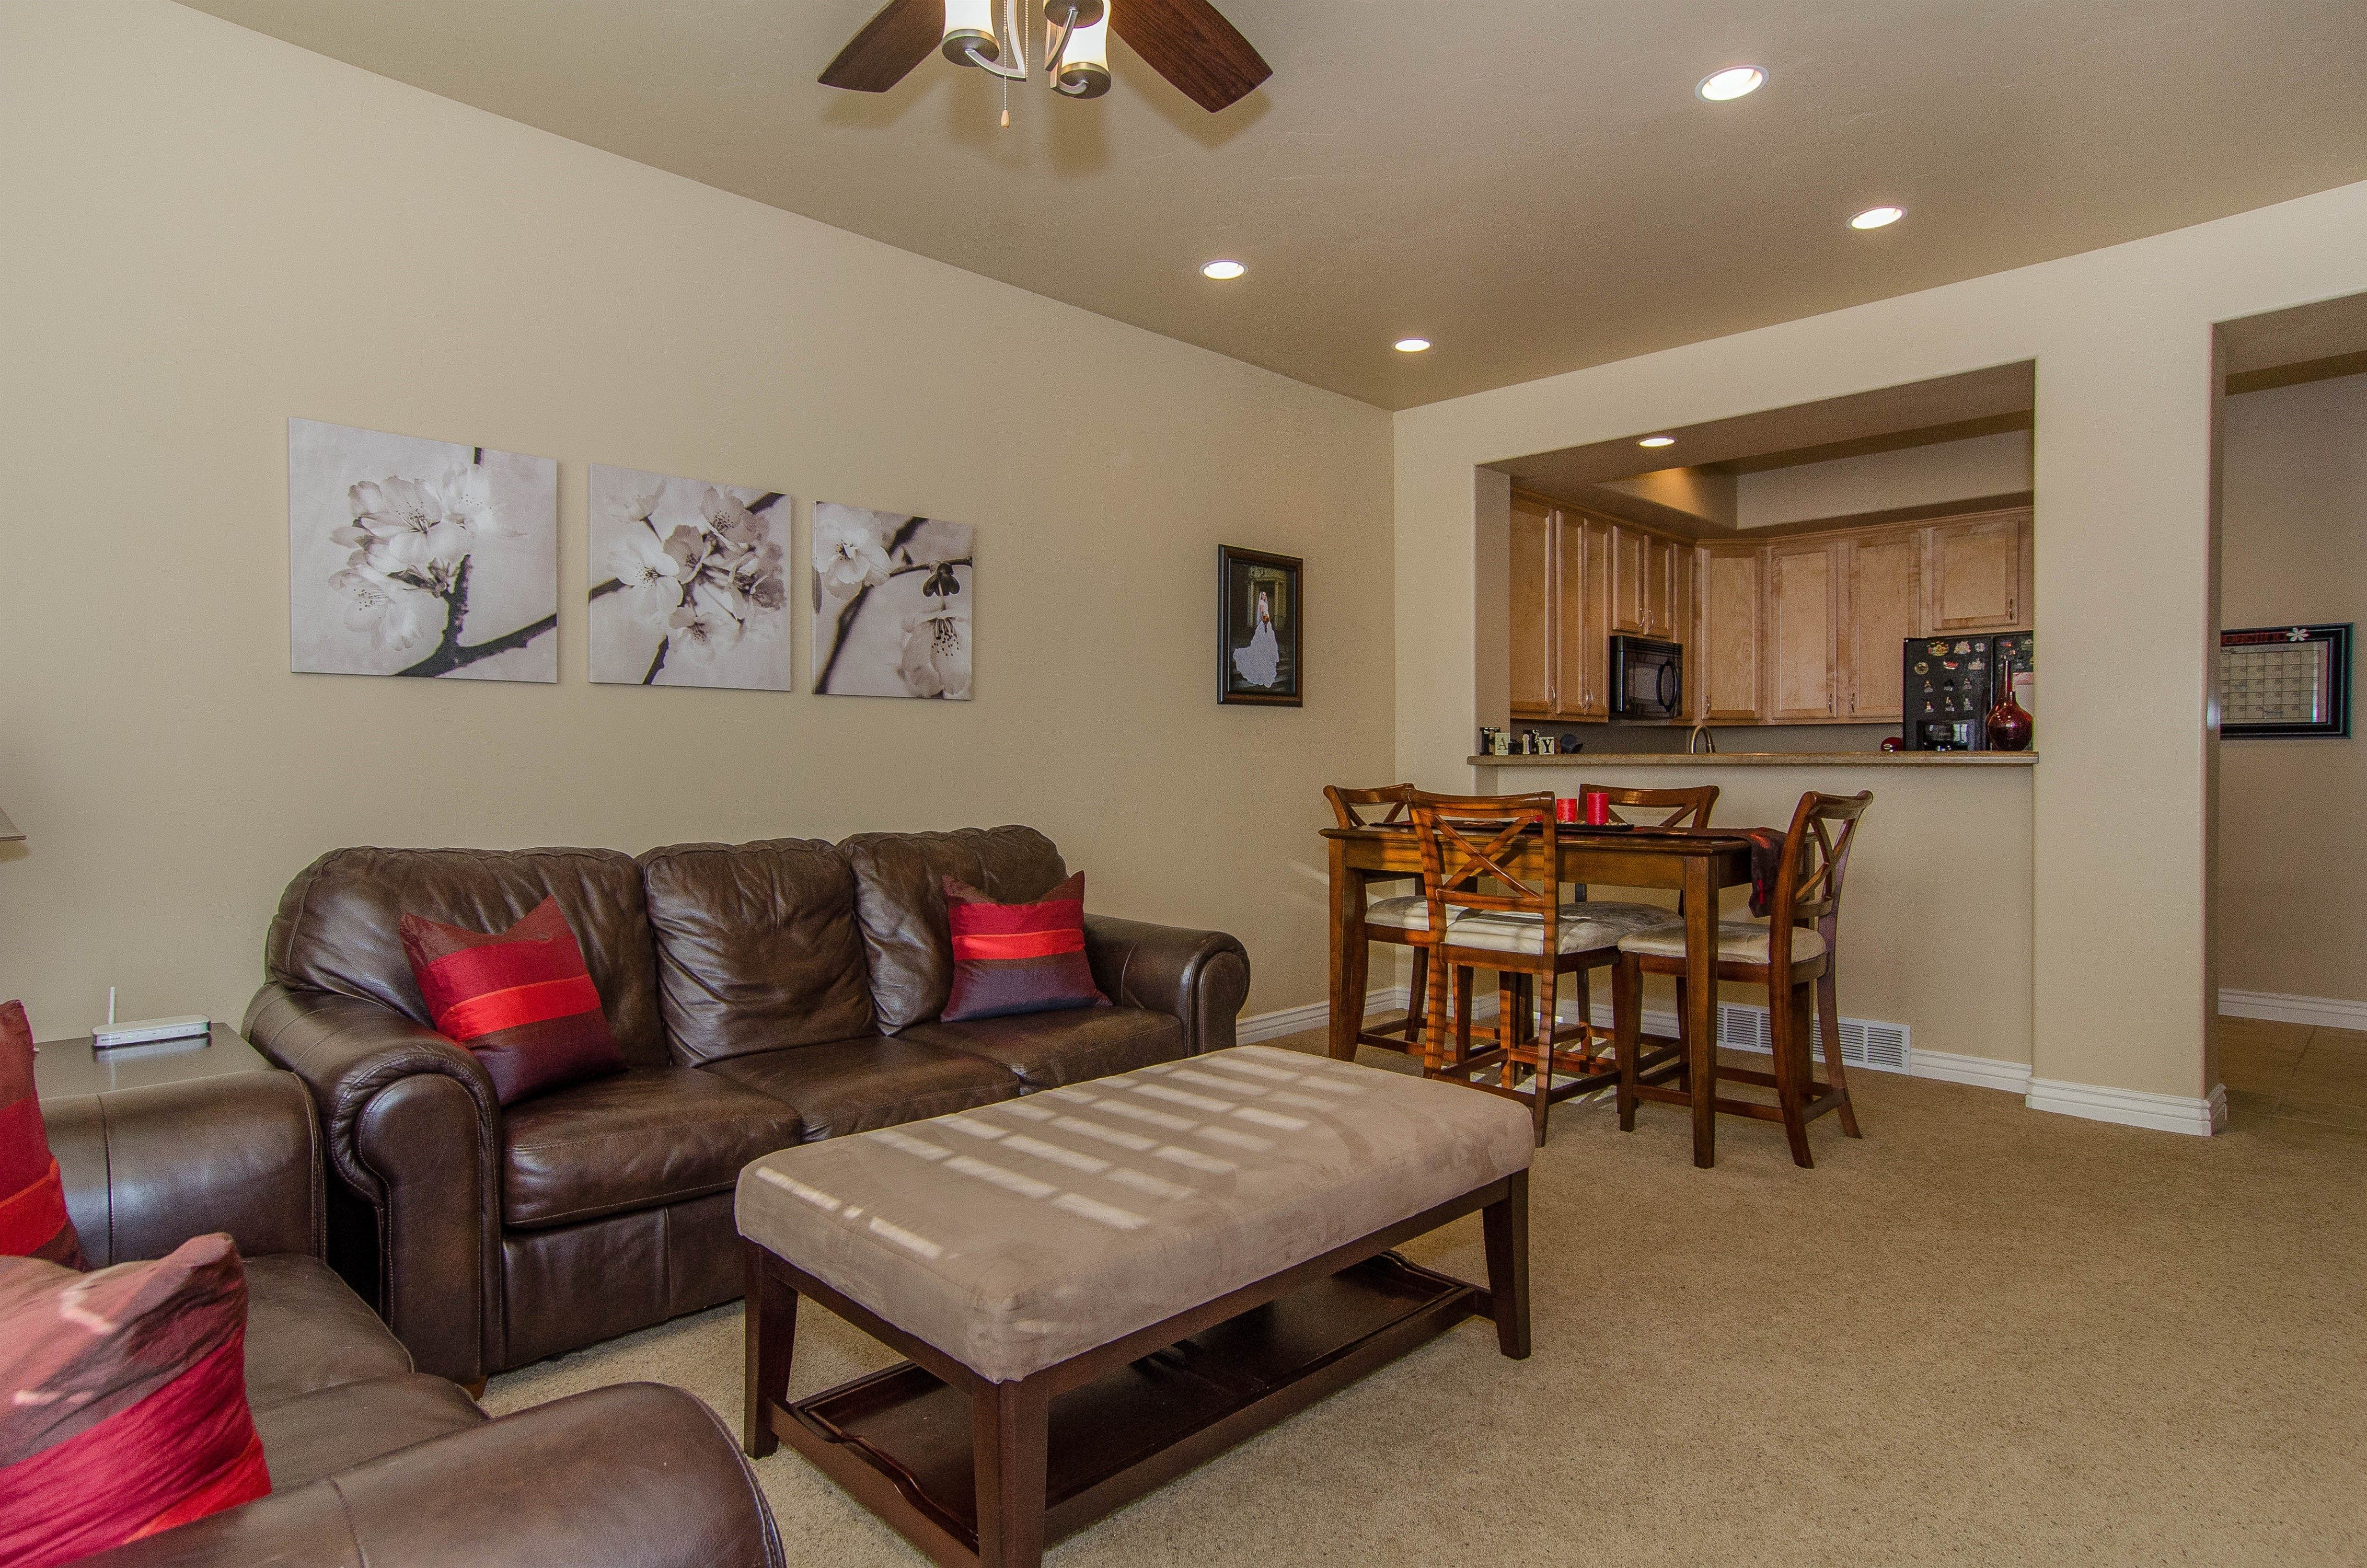 Living room, looking into kitchen - 10773 S Ozarks Dr, South ...